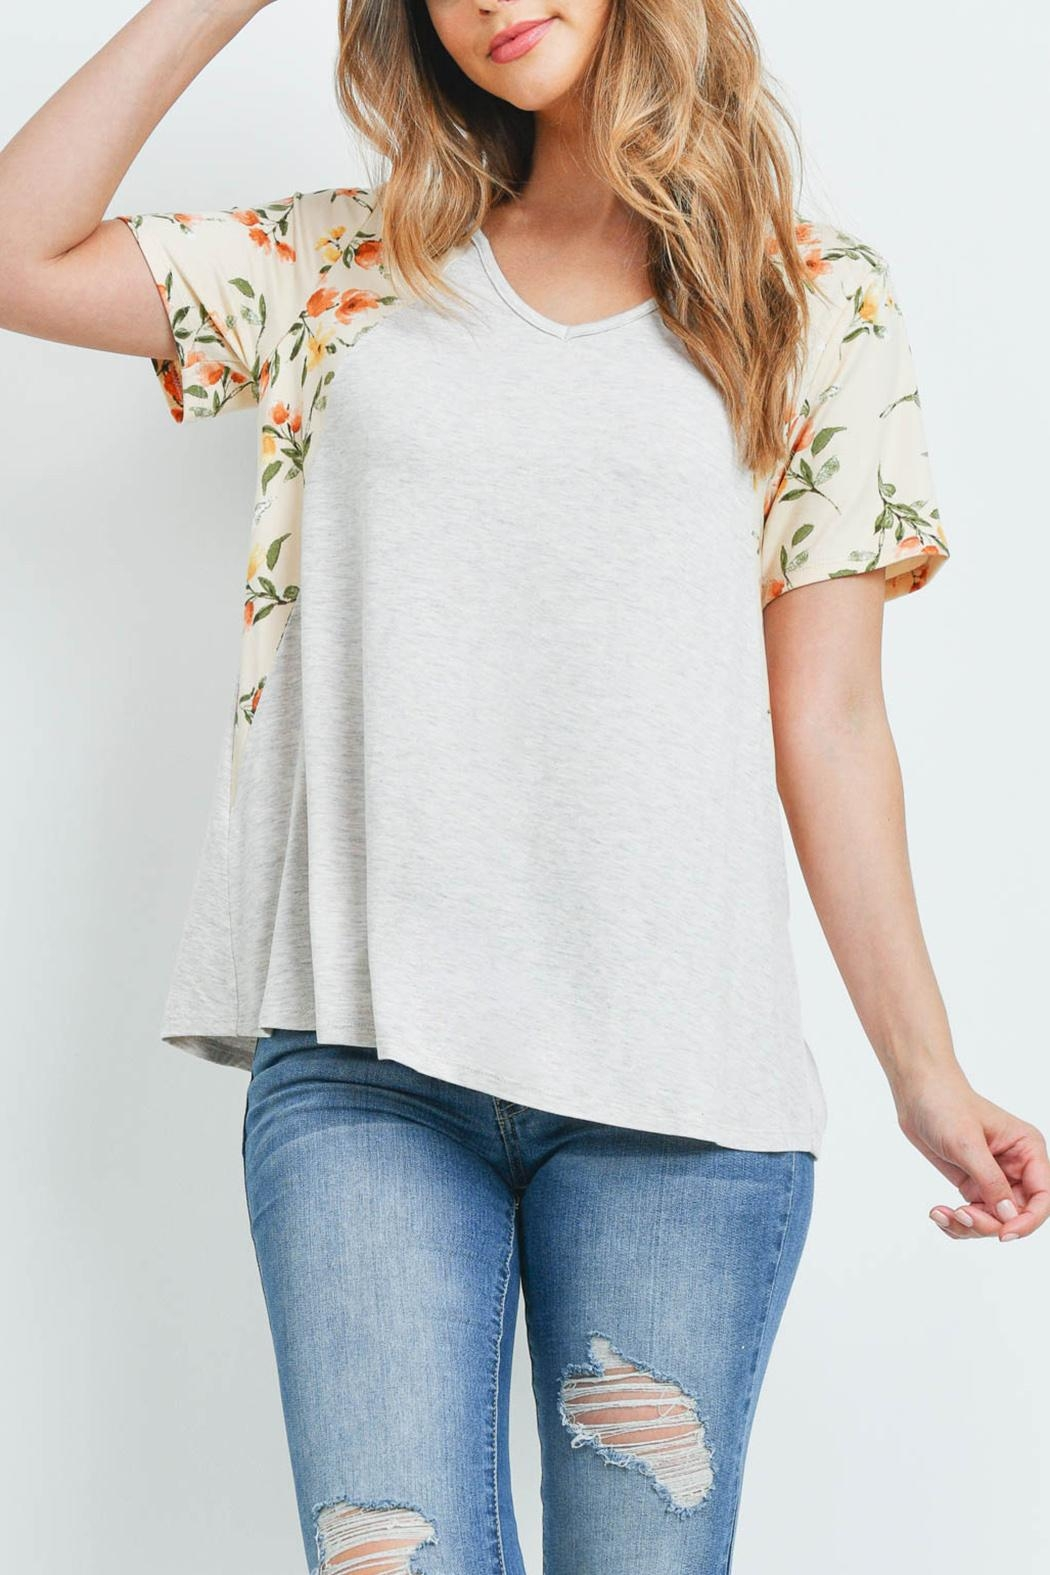 Riah Fashion Floral-Contrast-Two-Toned-V-Neck-Top - Main Image